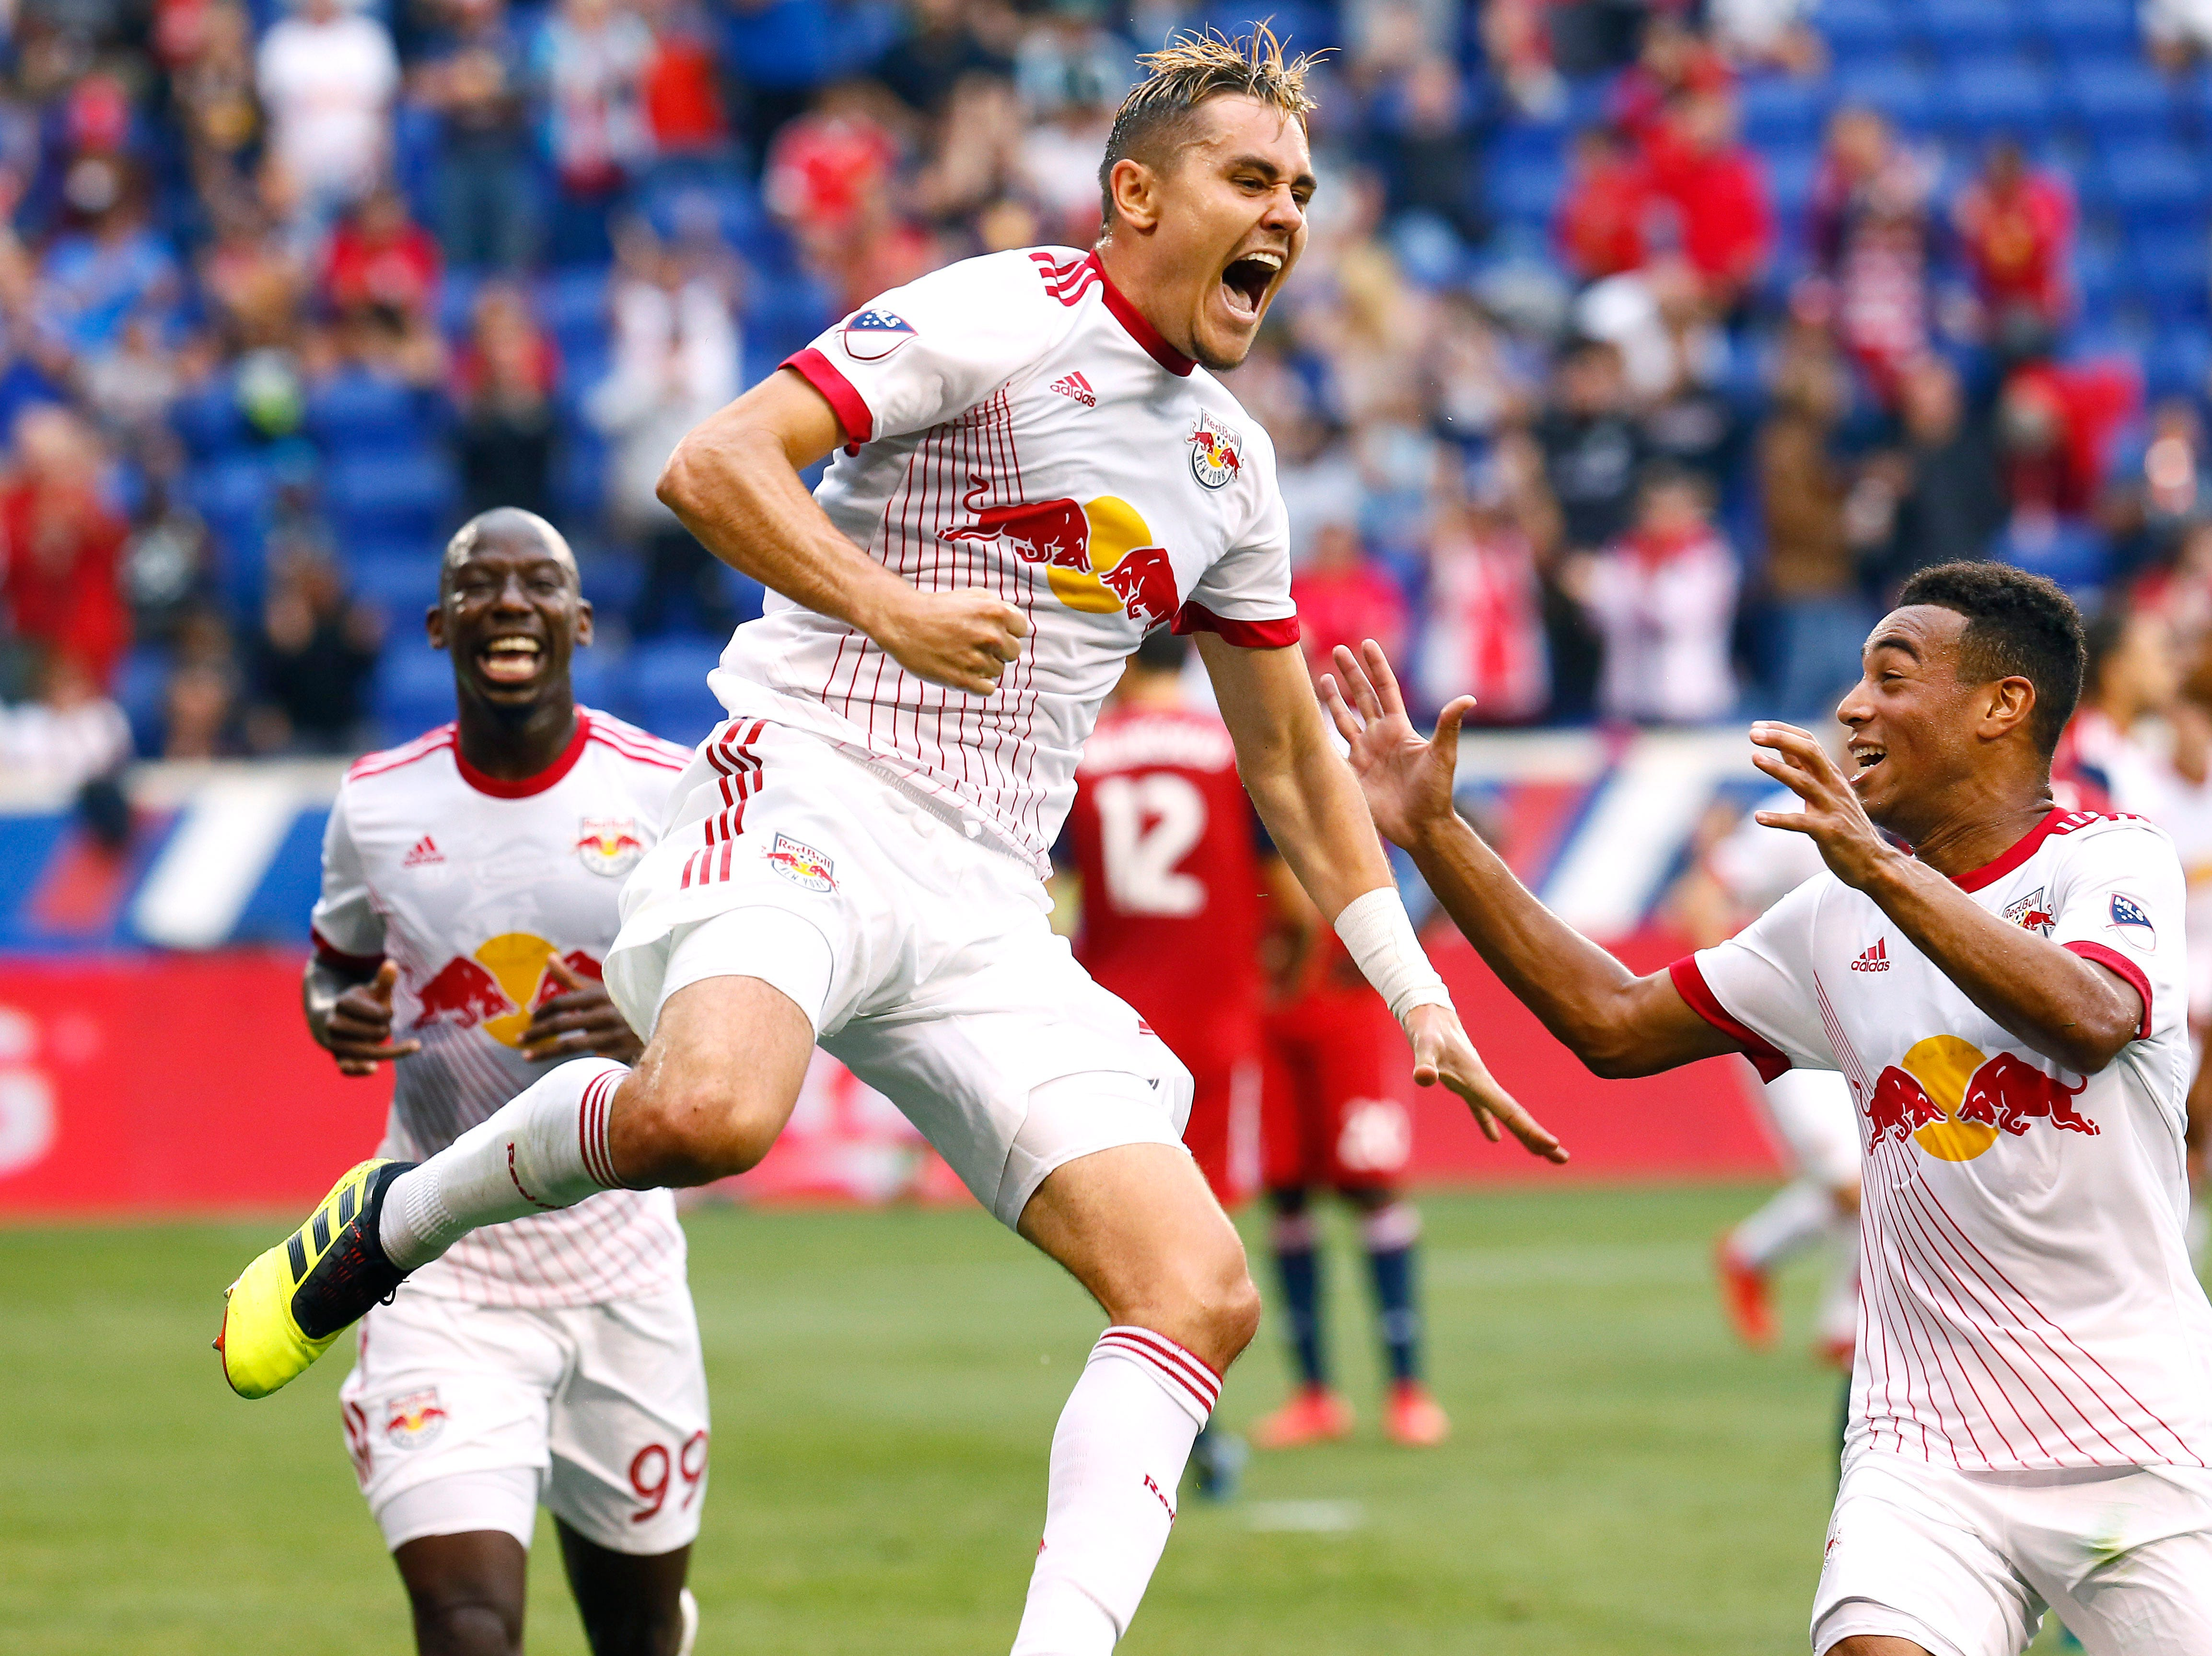 Red Bulls Aaron Long celebrates his first half goal vs. FC Dallas at the Red Bull Arena. June 23, 2018. Harrison, NJ